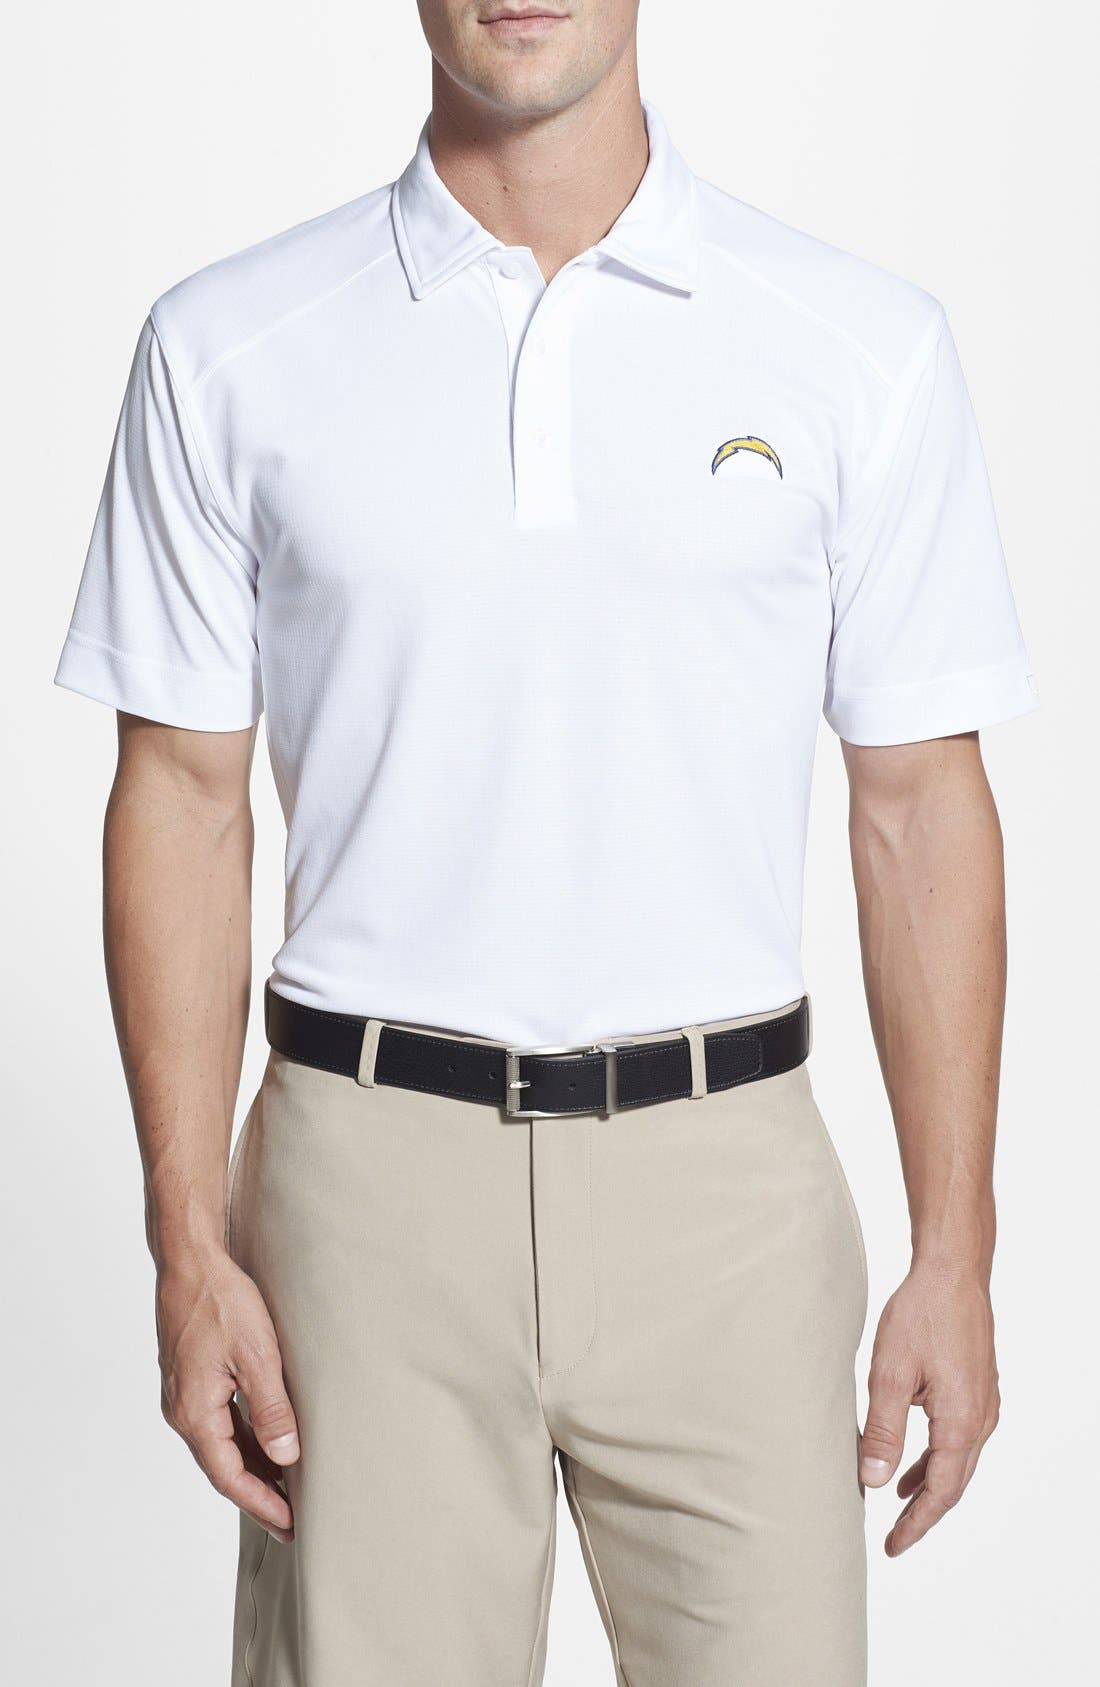 San Diego Chargers - Genre DryTec Moisture Wicking Polo,                             Main thumbnail 1, color,                             100